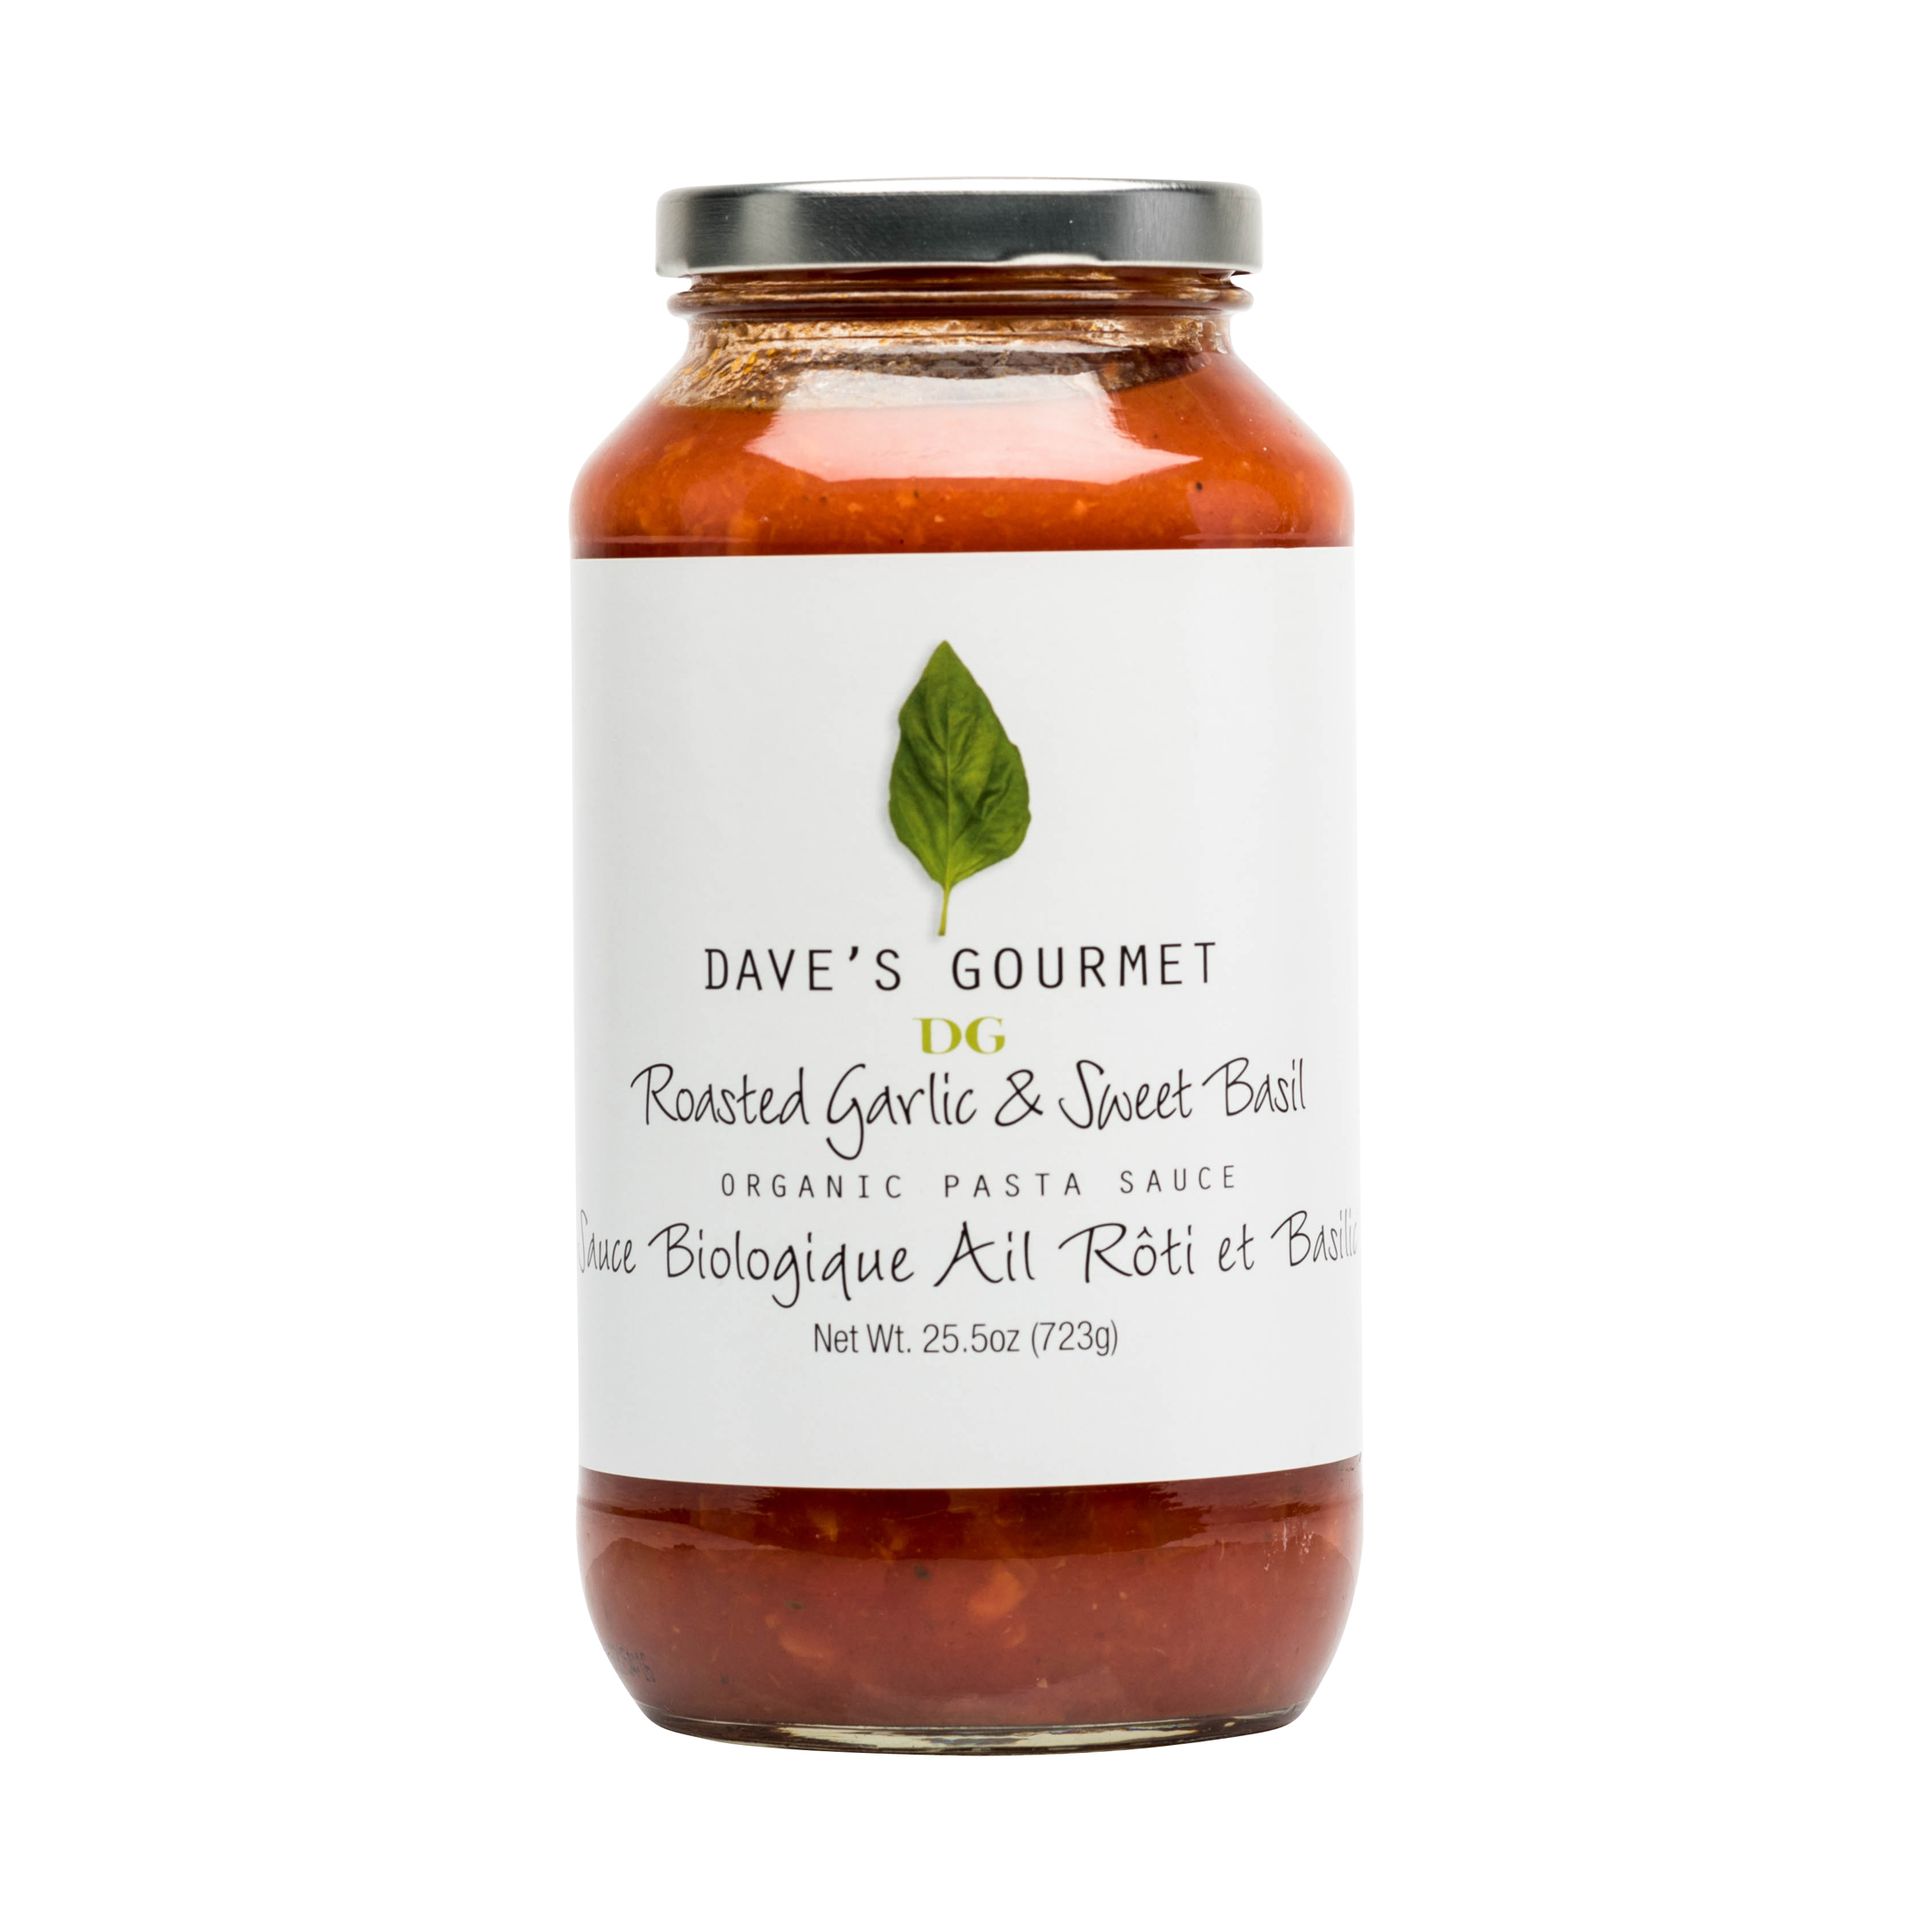 ROASTED GARLIC & SWEET BASIL ORGANIC PASTA SAUCE